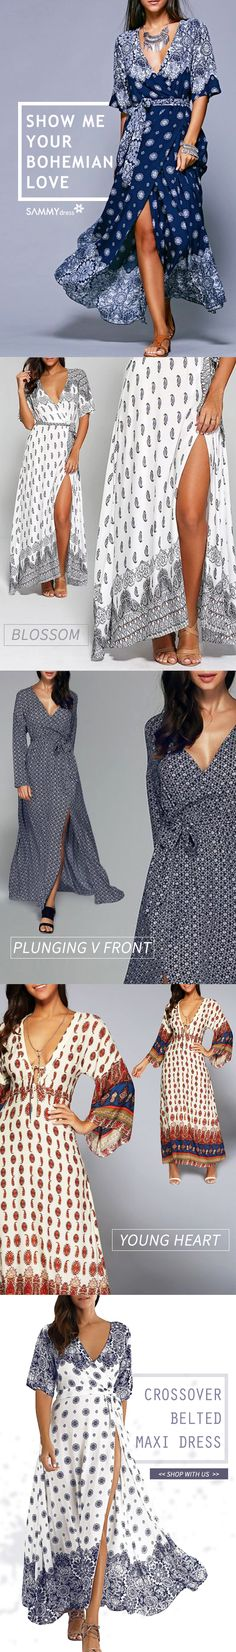 Boho dresses that we love! Show your elegance and beauty with Sammydress's bohemian maxi dress! Plunging V front makes your collarbones and shoulder line prettier and sexier! High-cut slit make your legs look longer and slimmer! Chic design with various choices. Great choice for dating, party and travel! You can always find the right dress at www.sammydresss.com!